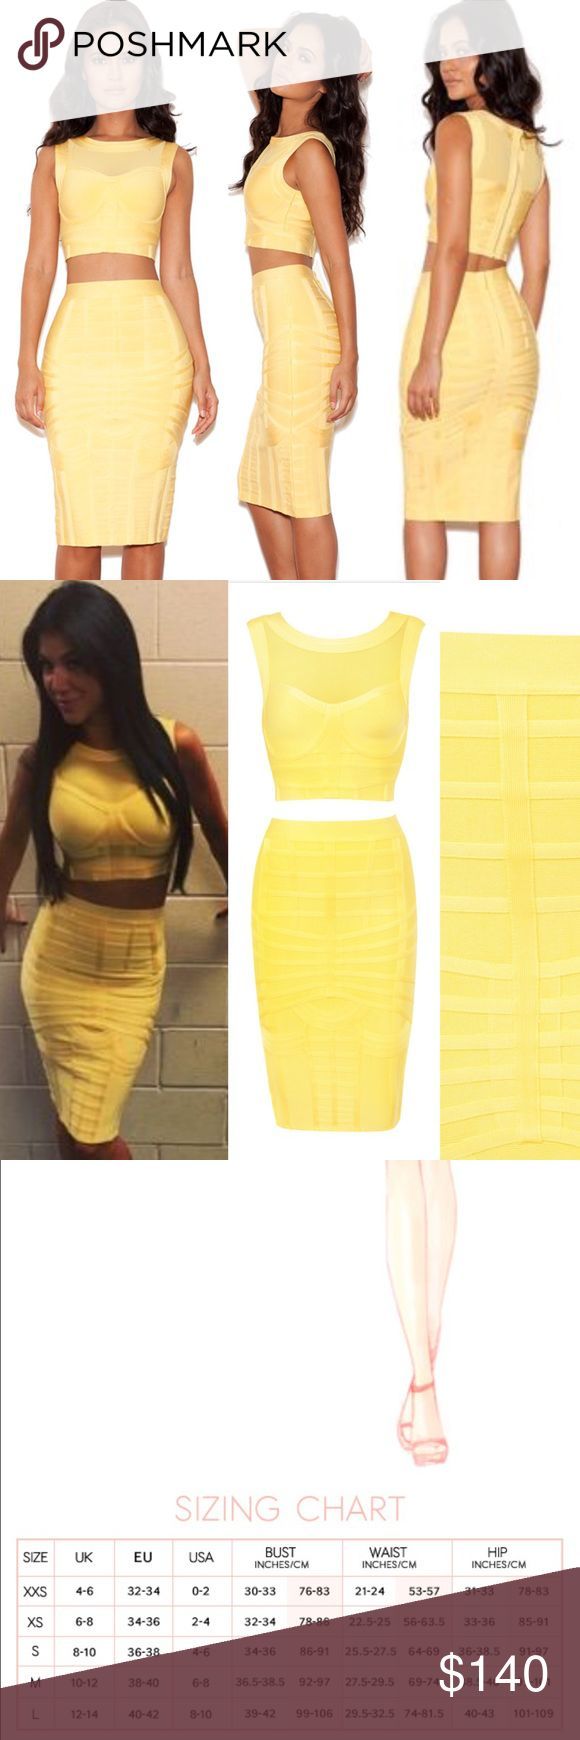 "NWOT House of CB Lemon Yellow Two Piece Midi Dress Super gorgeous ""Saeko"" heavily banded design, mesh details and figure flattering cut Bustier shaped cropped top with sleeveless design and knee length skirt combine beautifully to create the perfect bandage two piece.  SIZE: SMALL House of CB Dresses Midi"